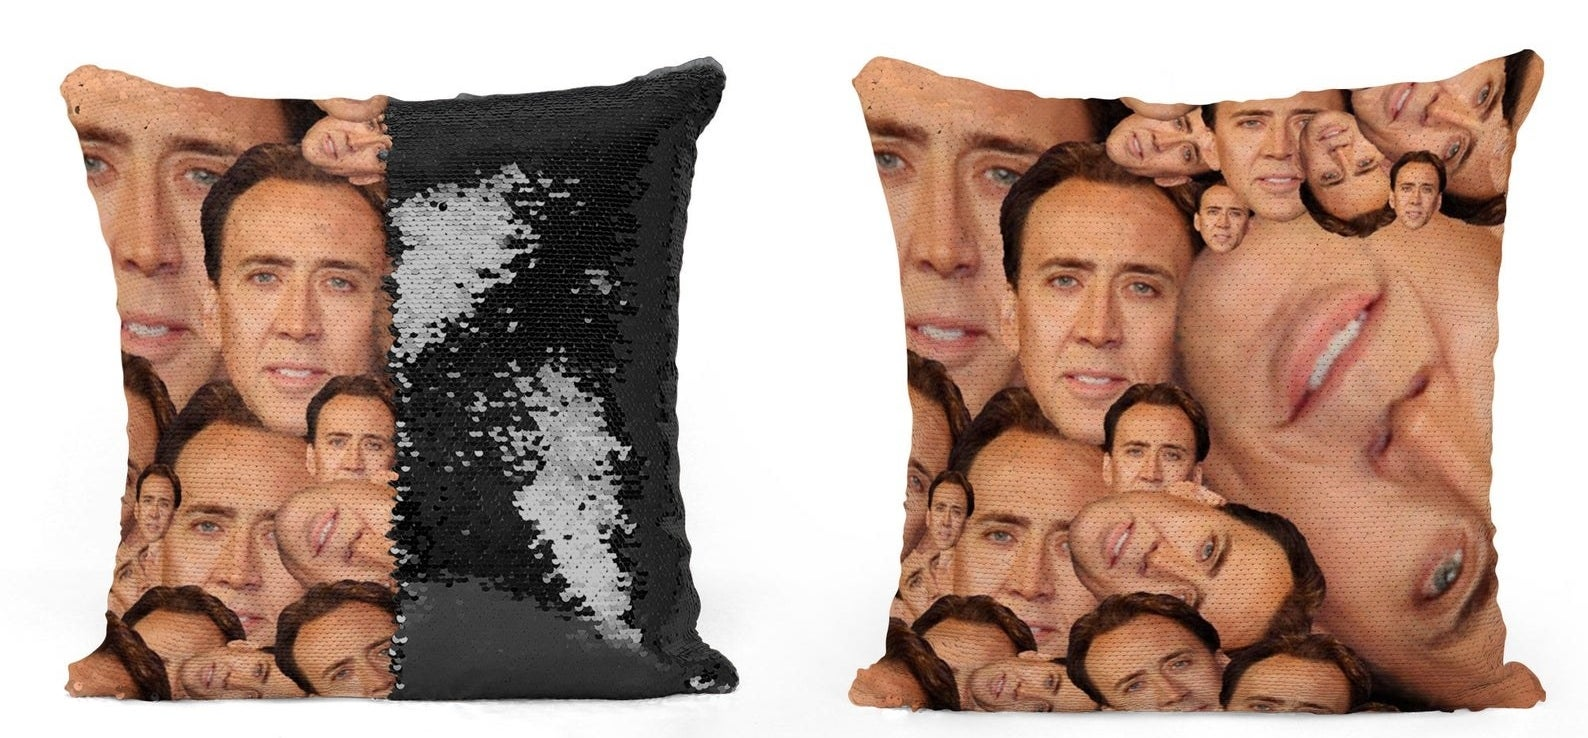 Pillow with a collage of Nicolas Cage faces that are hidden by sequins until brushed the opposite direction